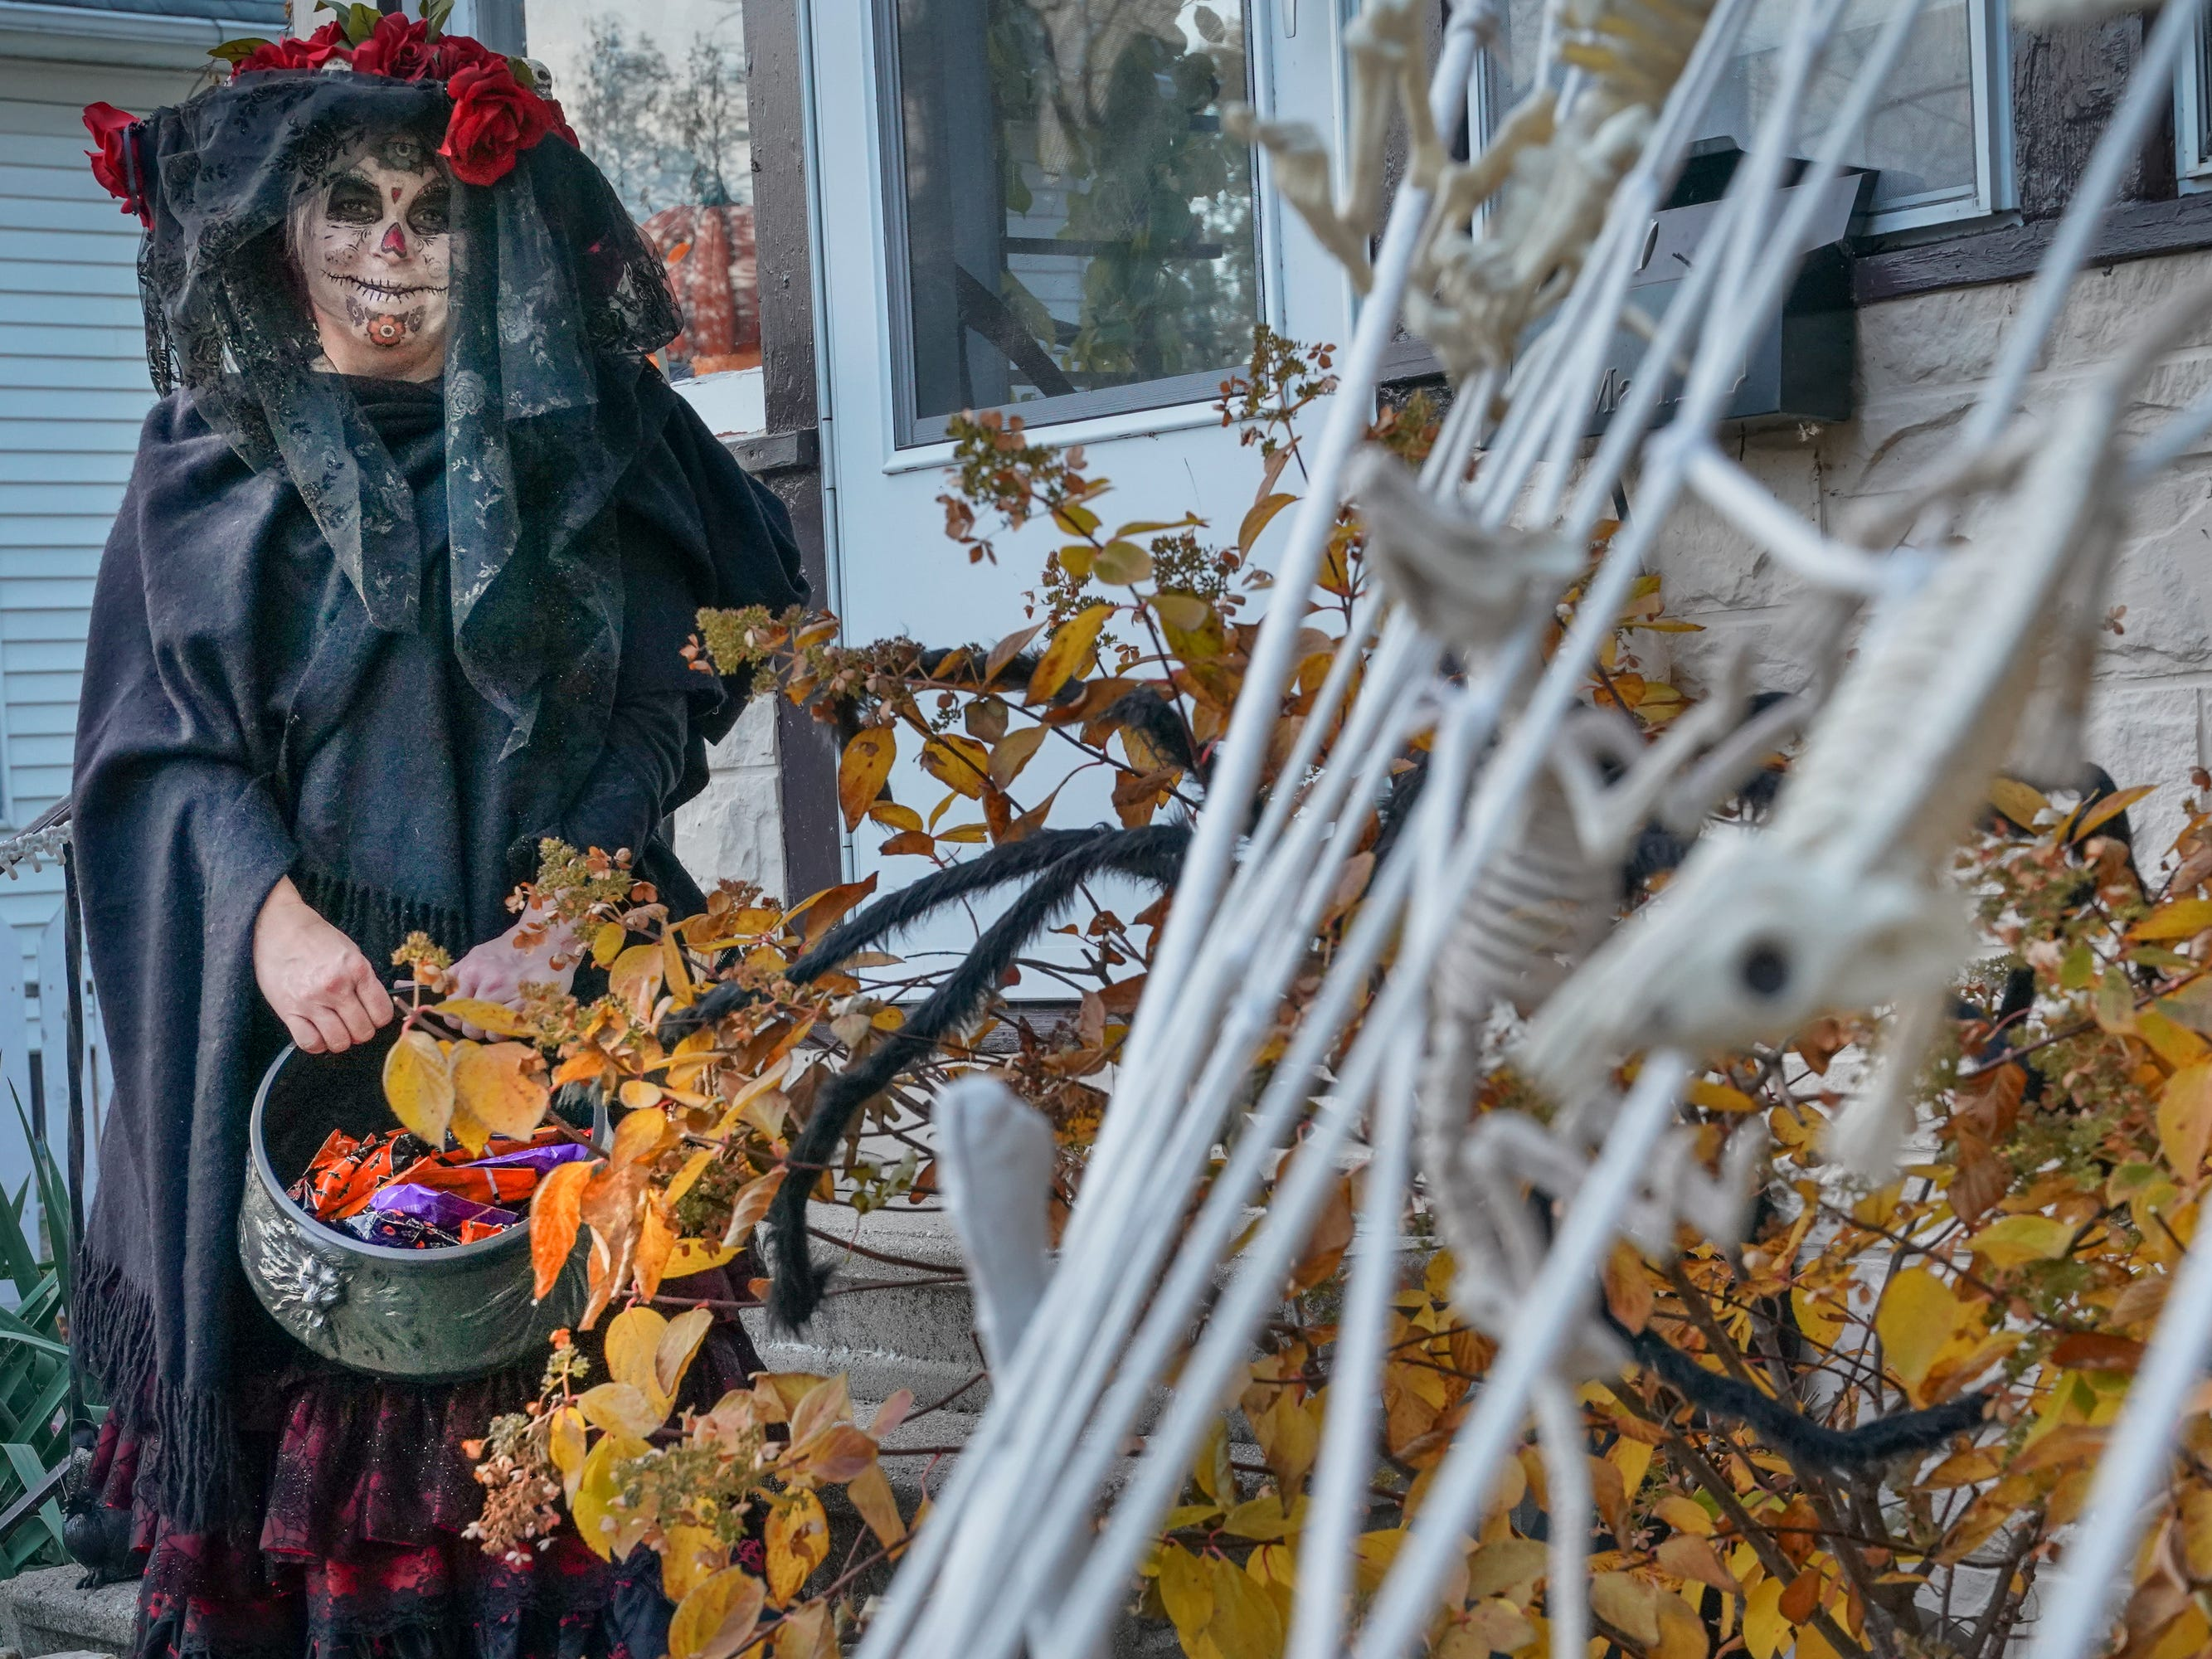 Jennifer Mansavage waits in front of her house for trick or treaters. Children, along with their parents, made the most of the beautiful autumn weather to trick or treat in Oshkosh Wednesday evening.